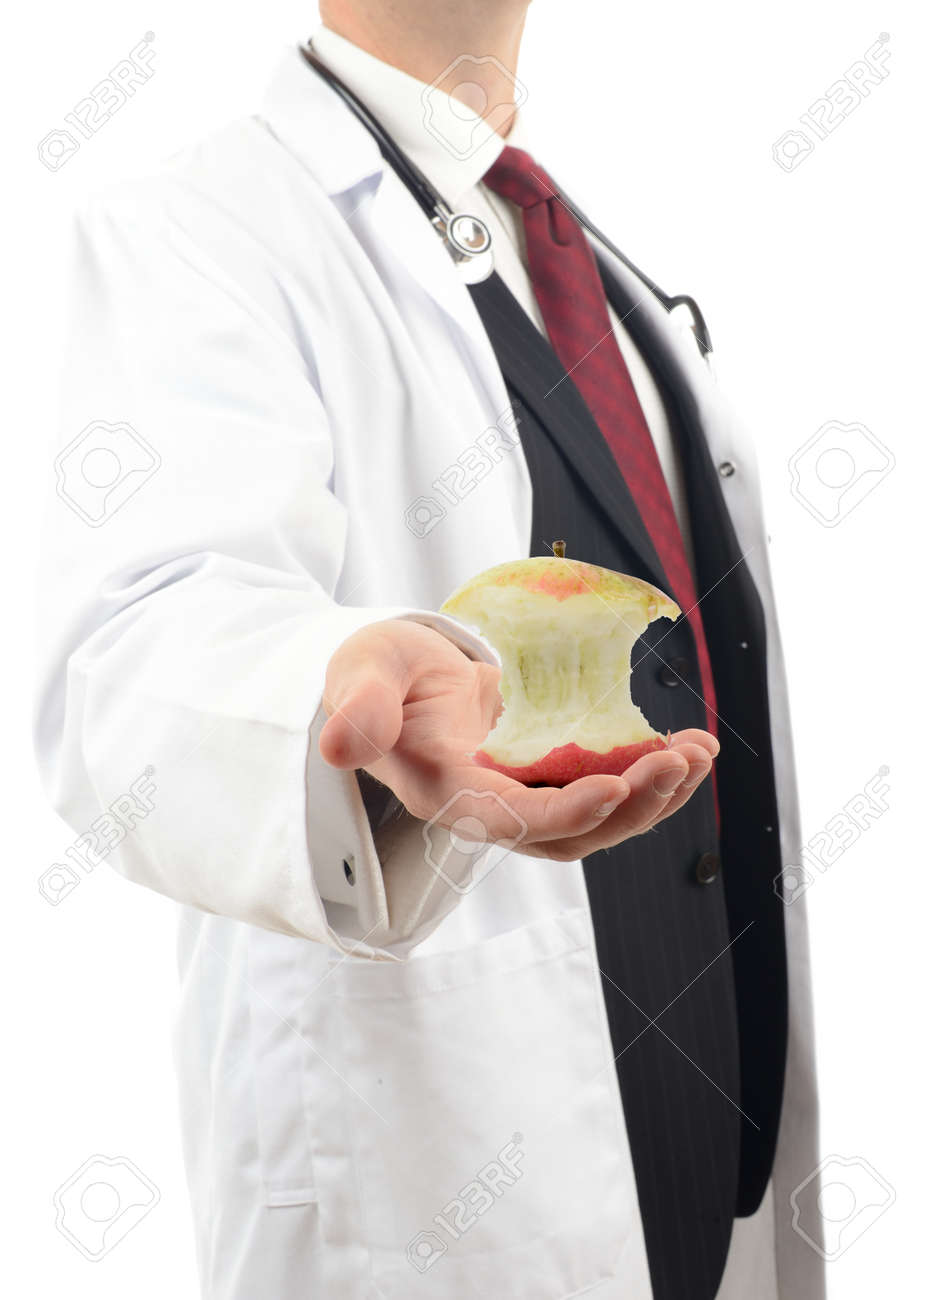 doctor showing healthy food to eat Stock Photo - 23080331